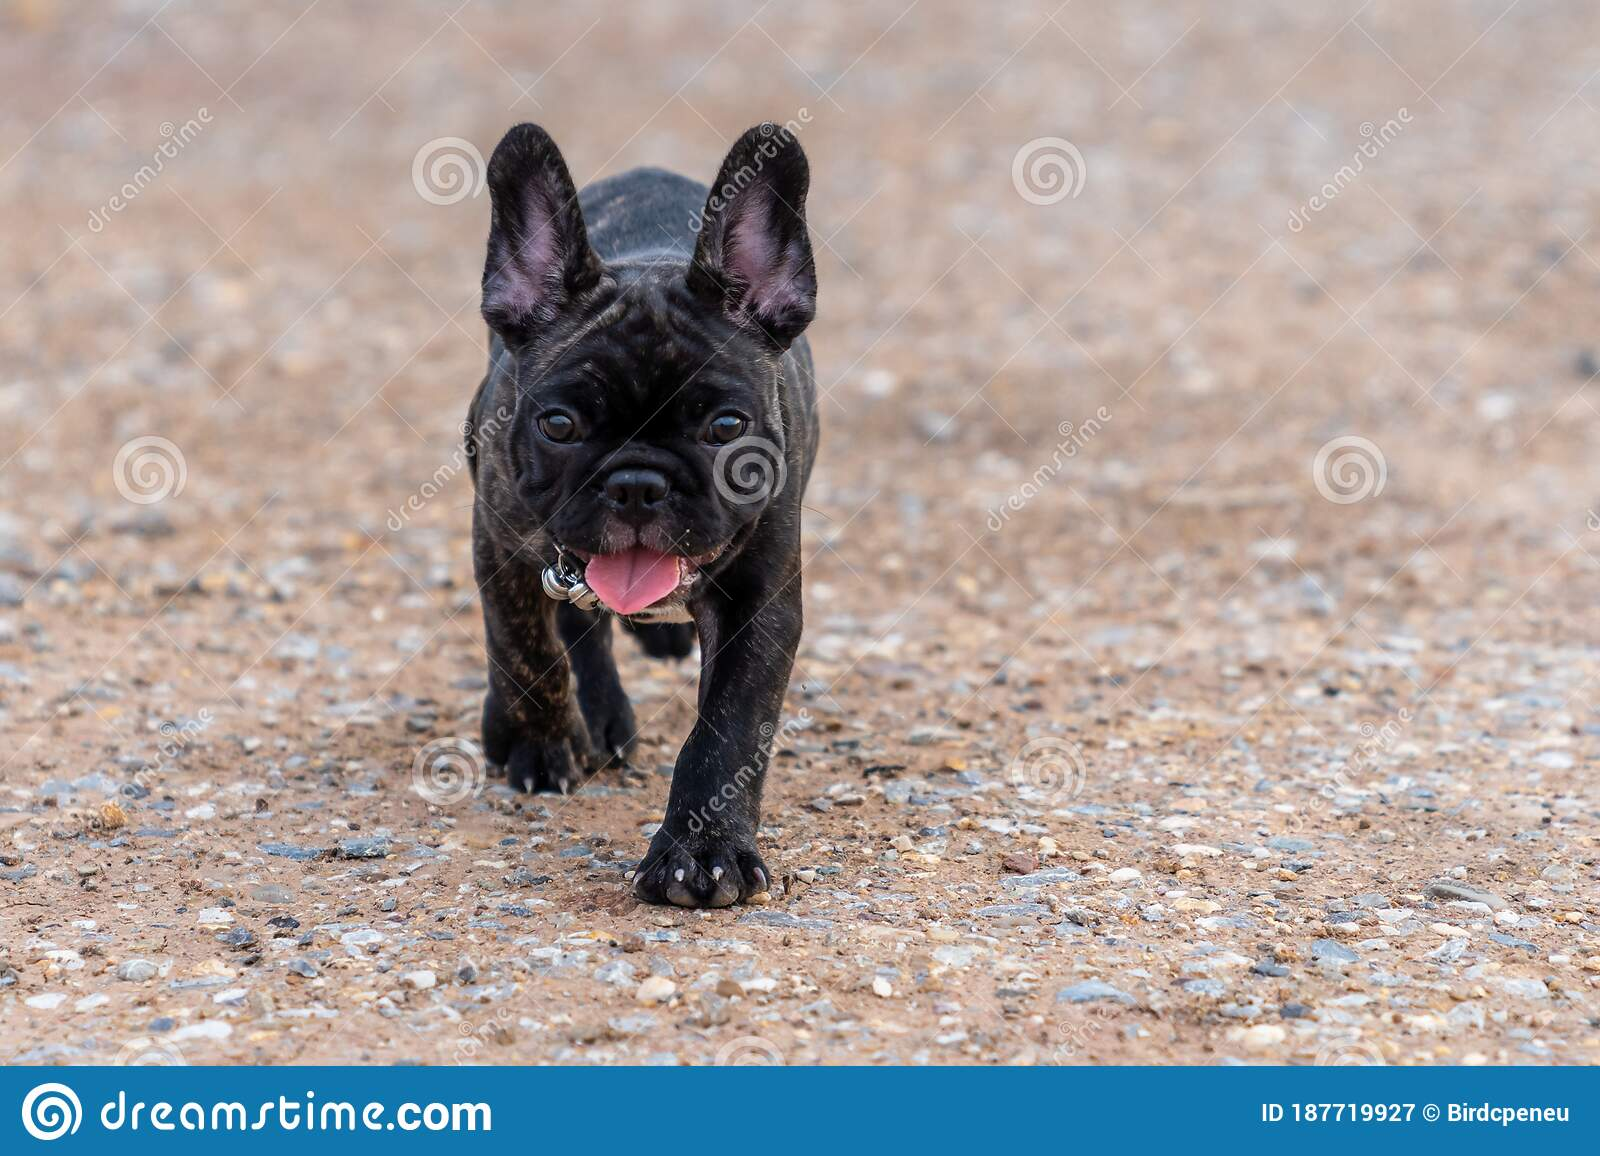 Brindle French Bulldog Puppy Standing Alone Stock Image Image Of Grass Closeup 187719927